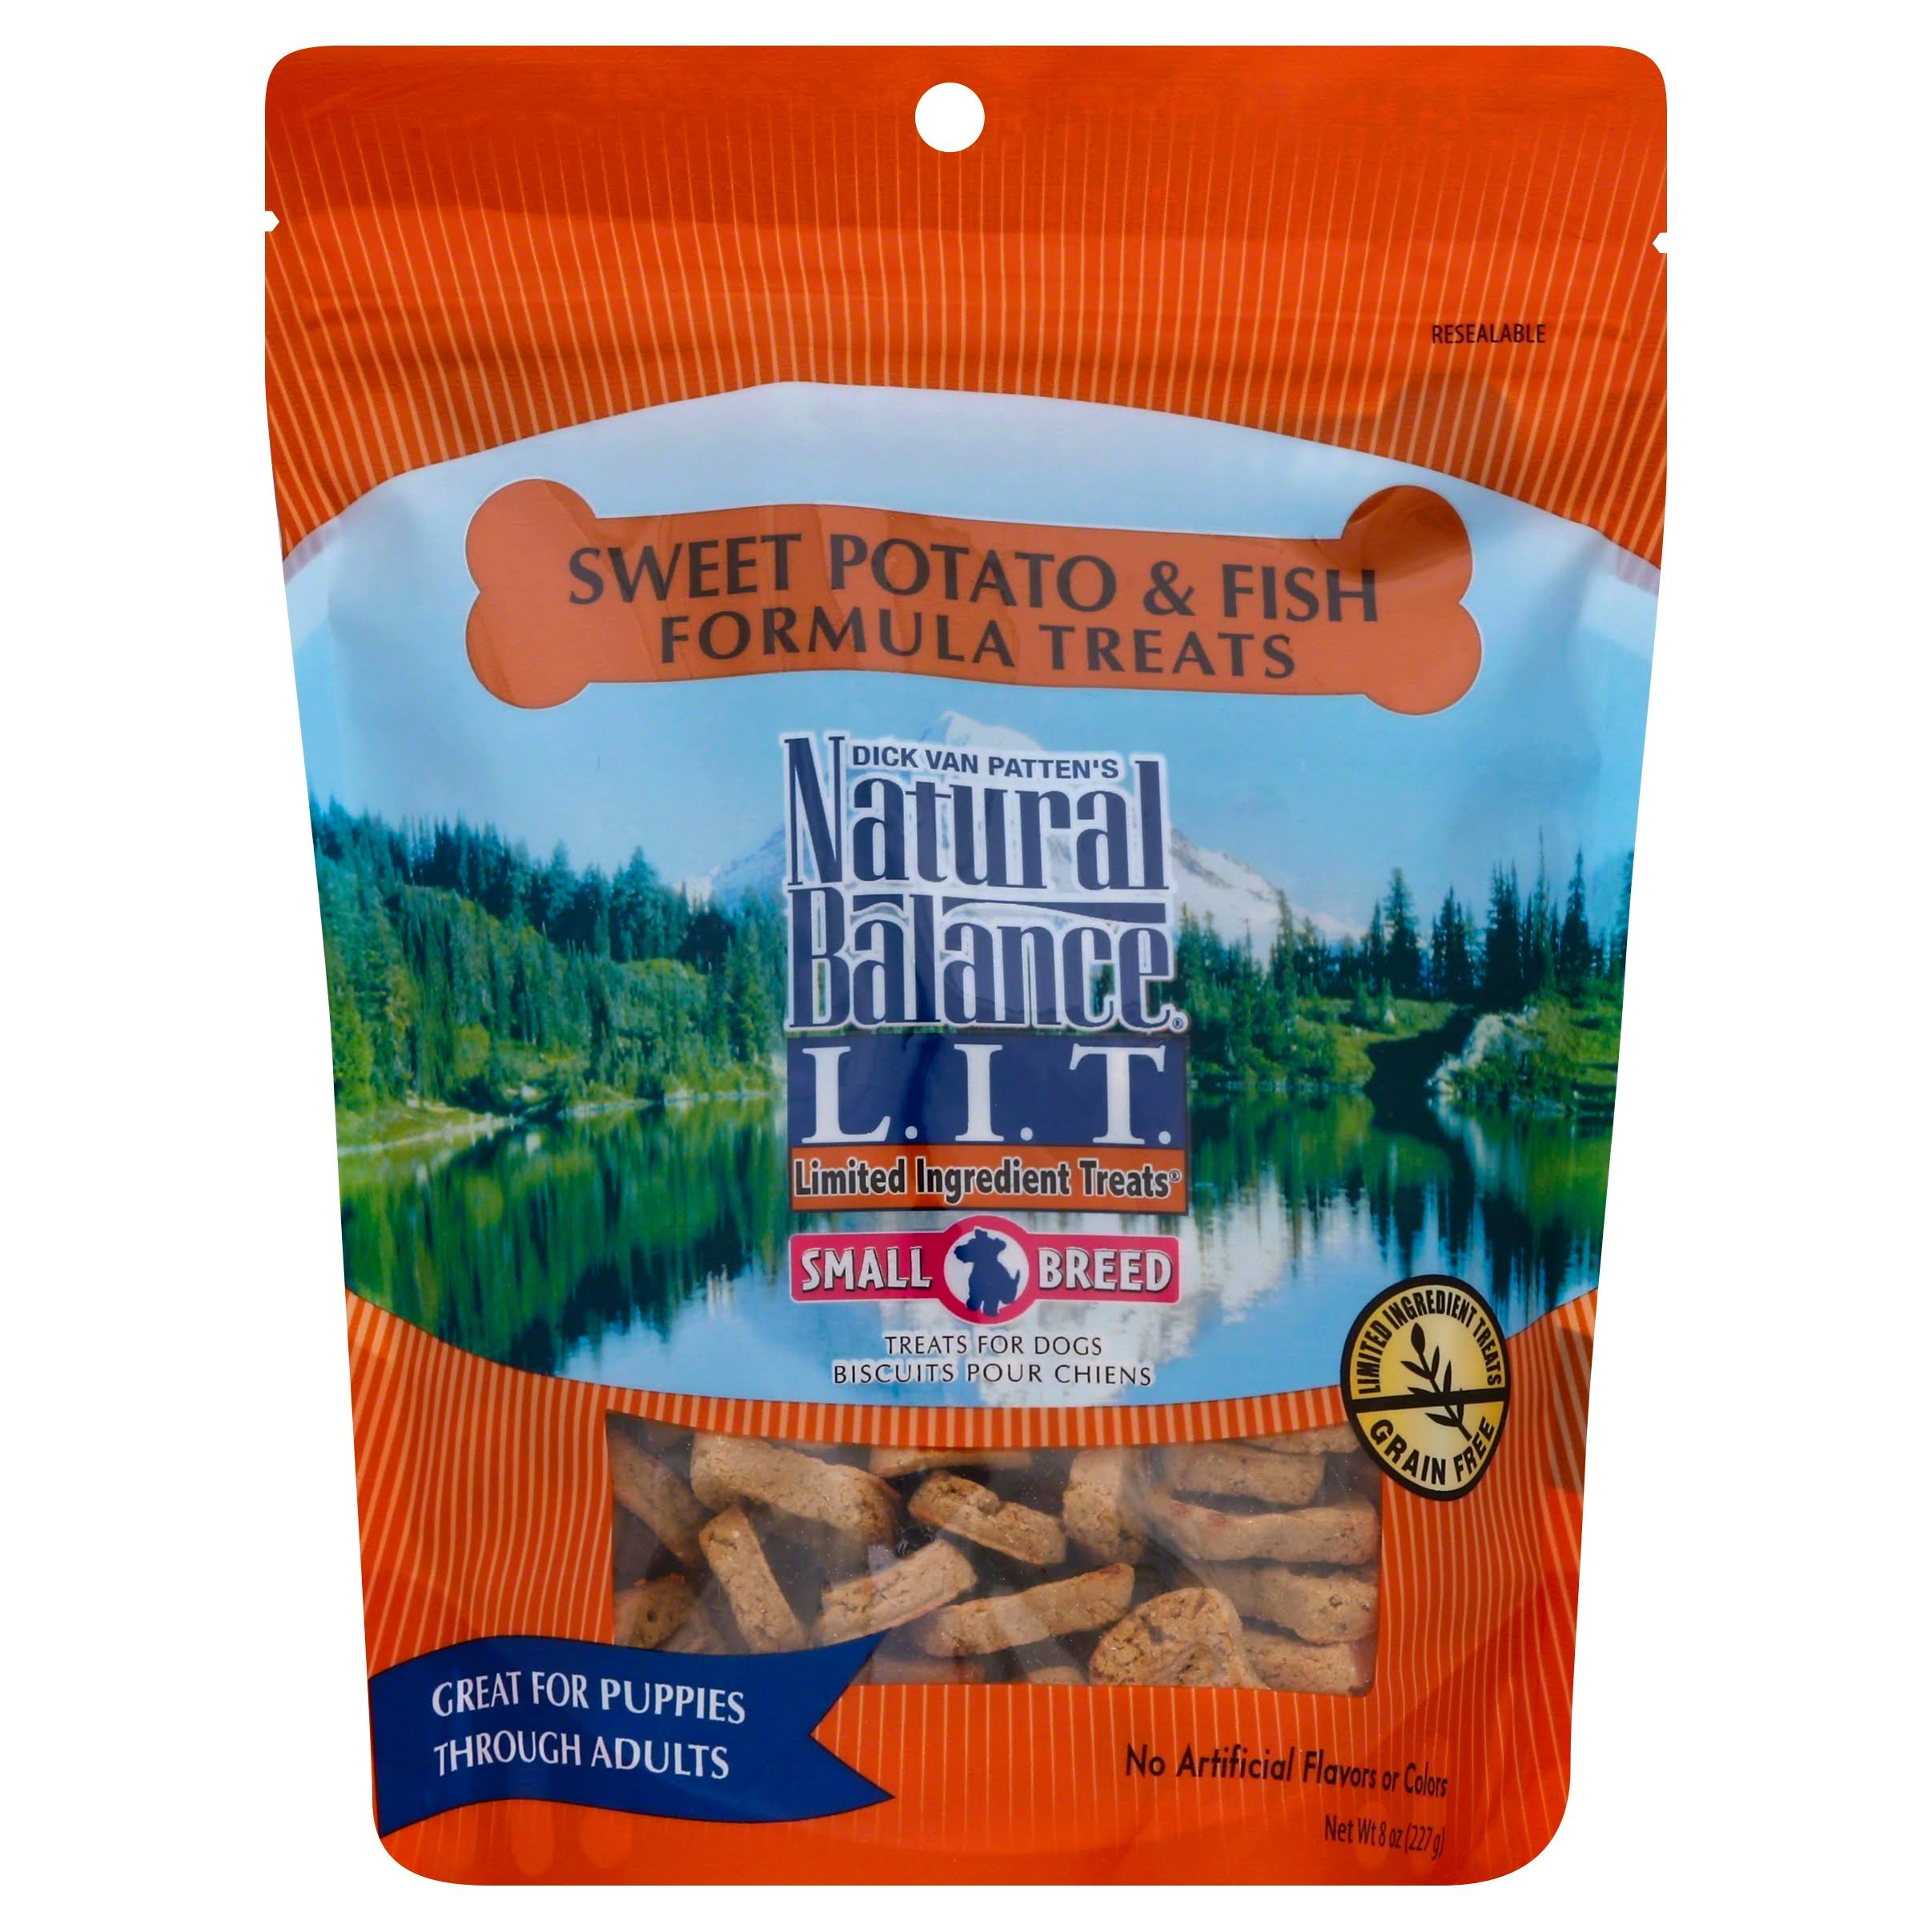 Natural Balance L.I.T. Treats for Dogs, Sweet Potato & Fish Formula, Small Breed - 8 oz